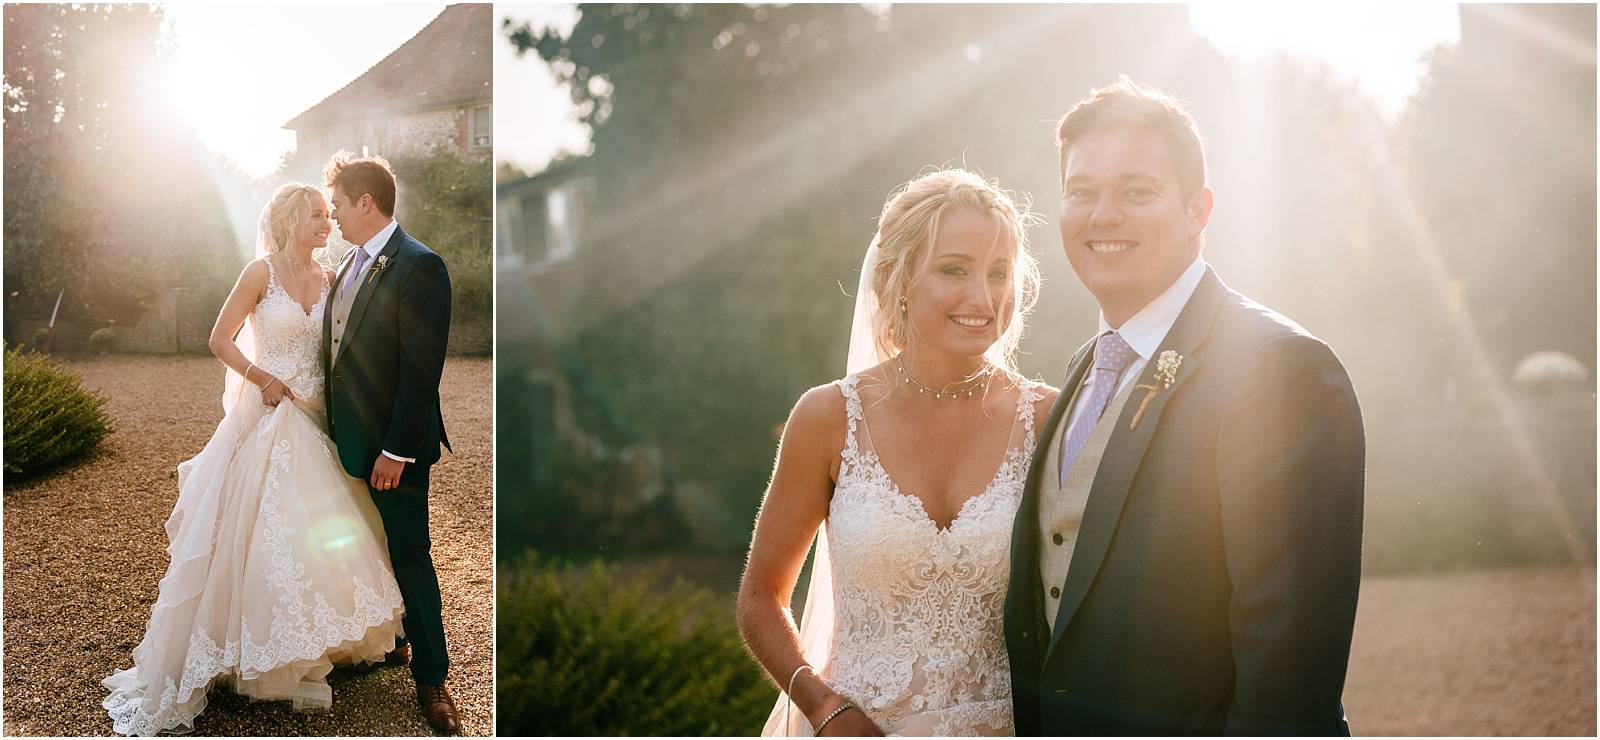 golden hour wedding photographs